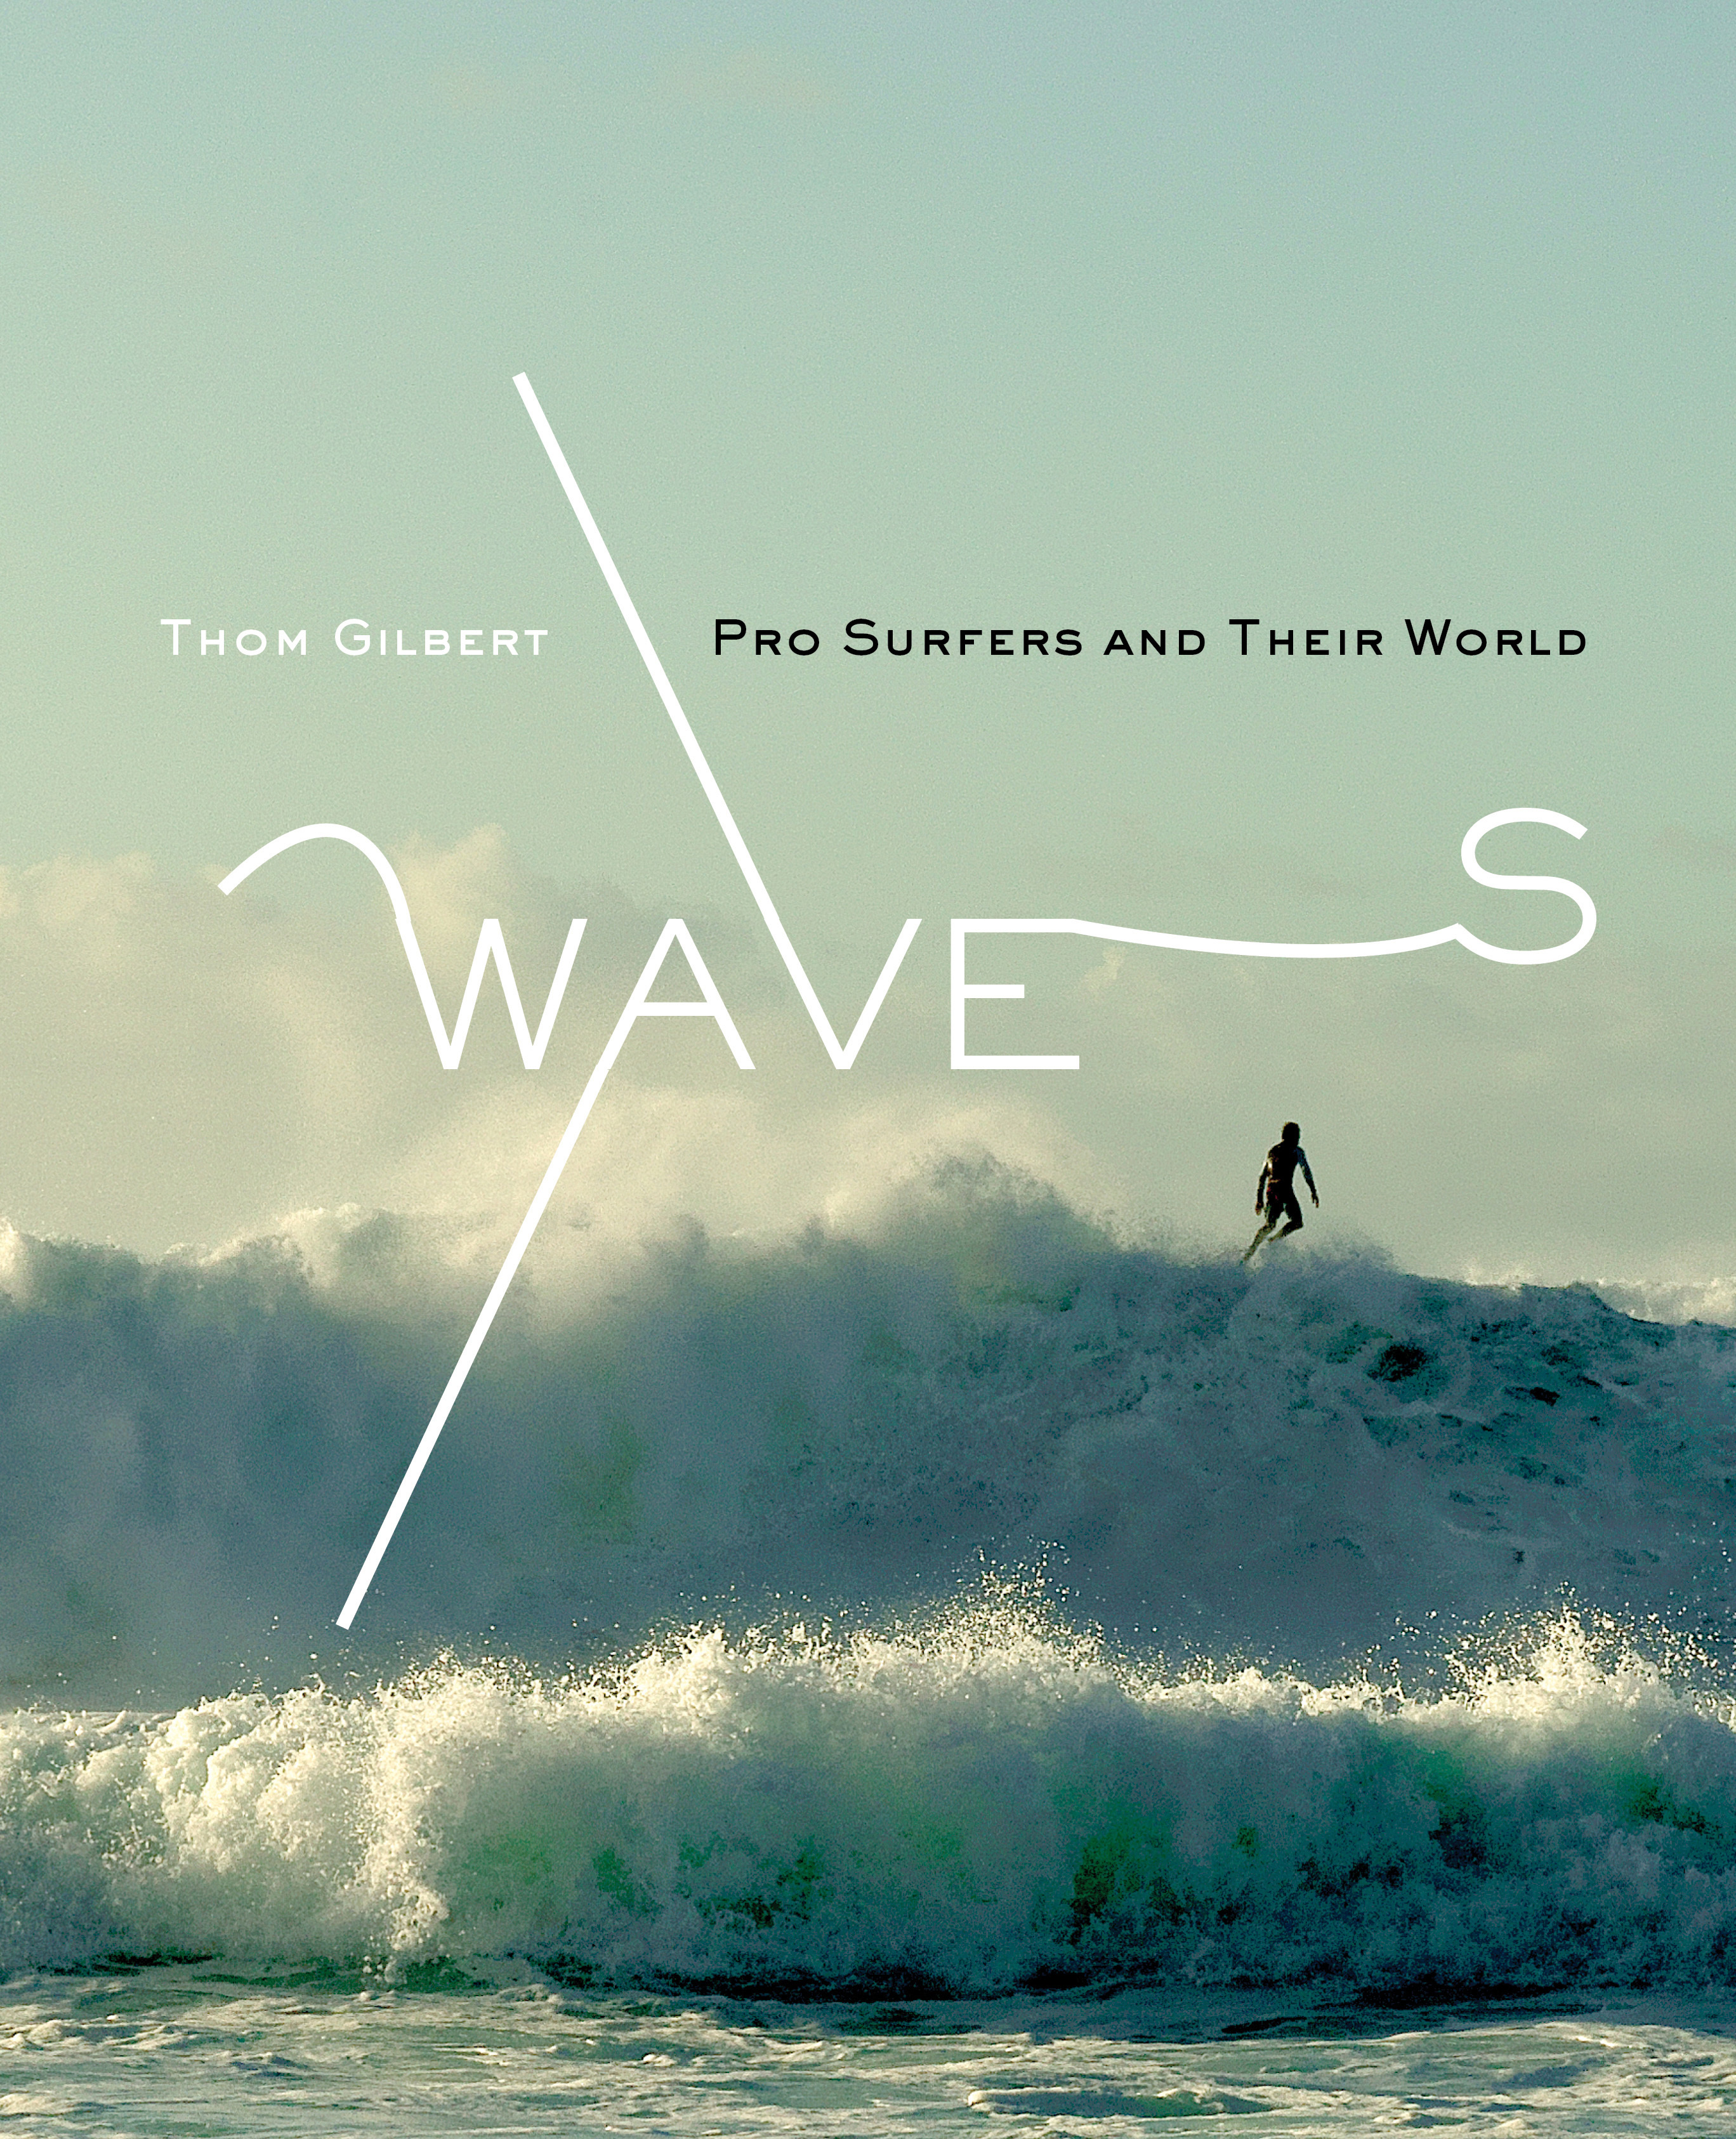 WAVES - PRO SURFERS AND THEIR WORLD